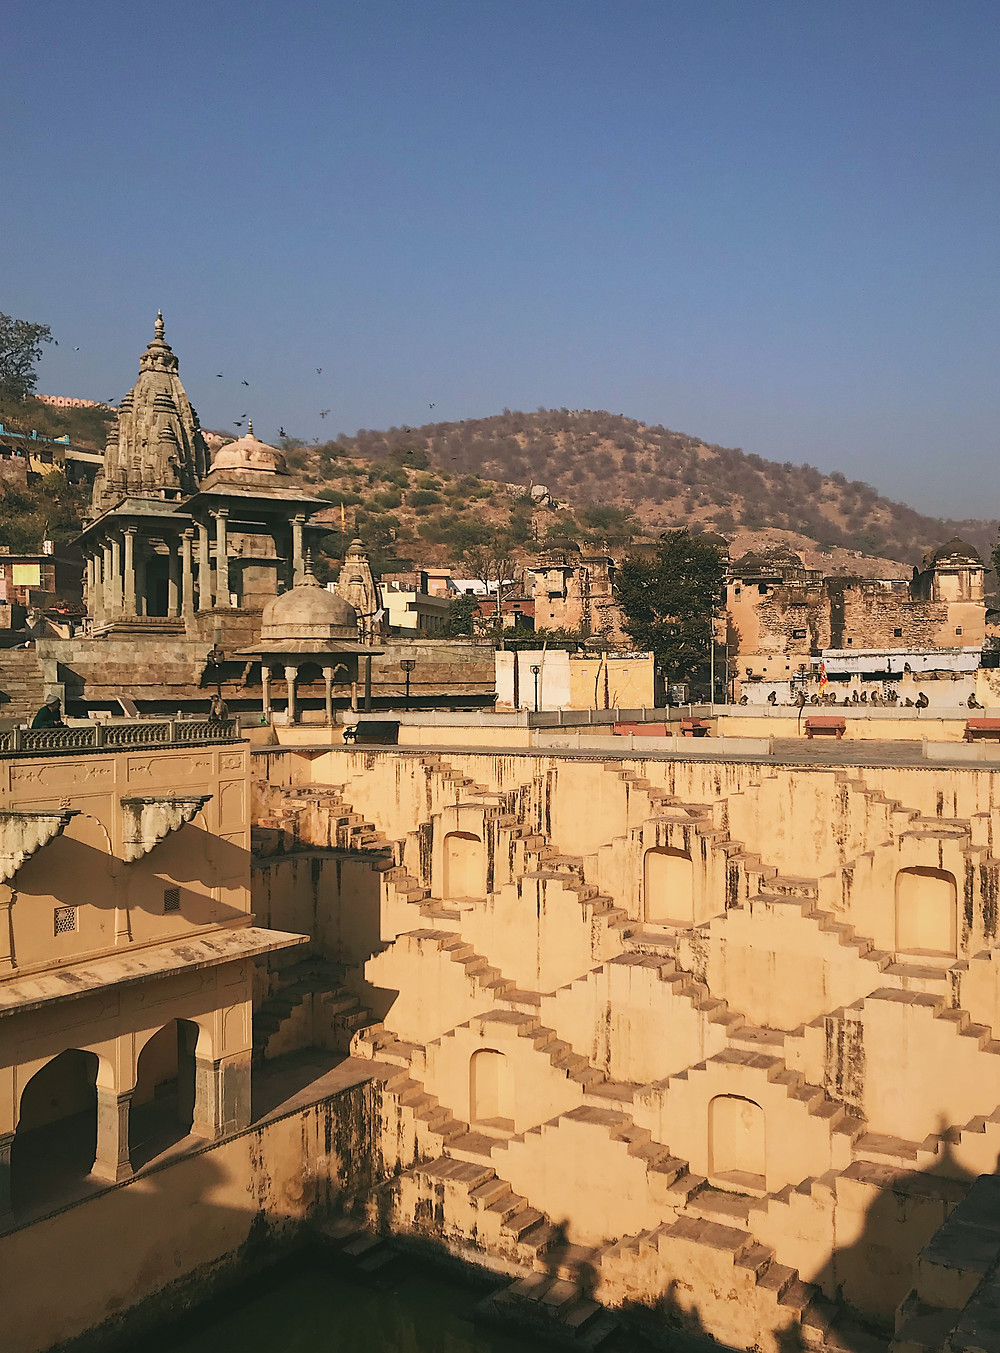 Panna Meena Ka Kund is a stepwell in Jaipur, Rajasthan, India